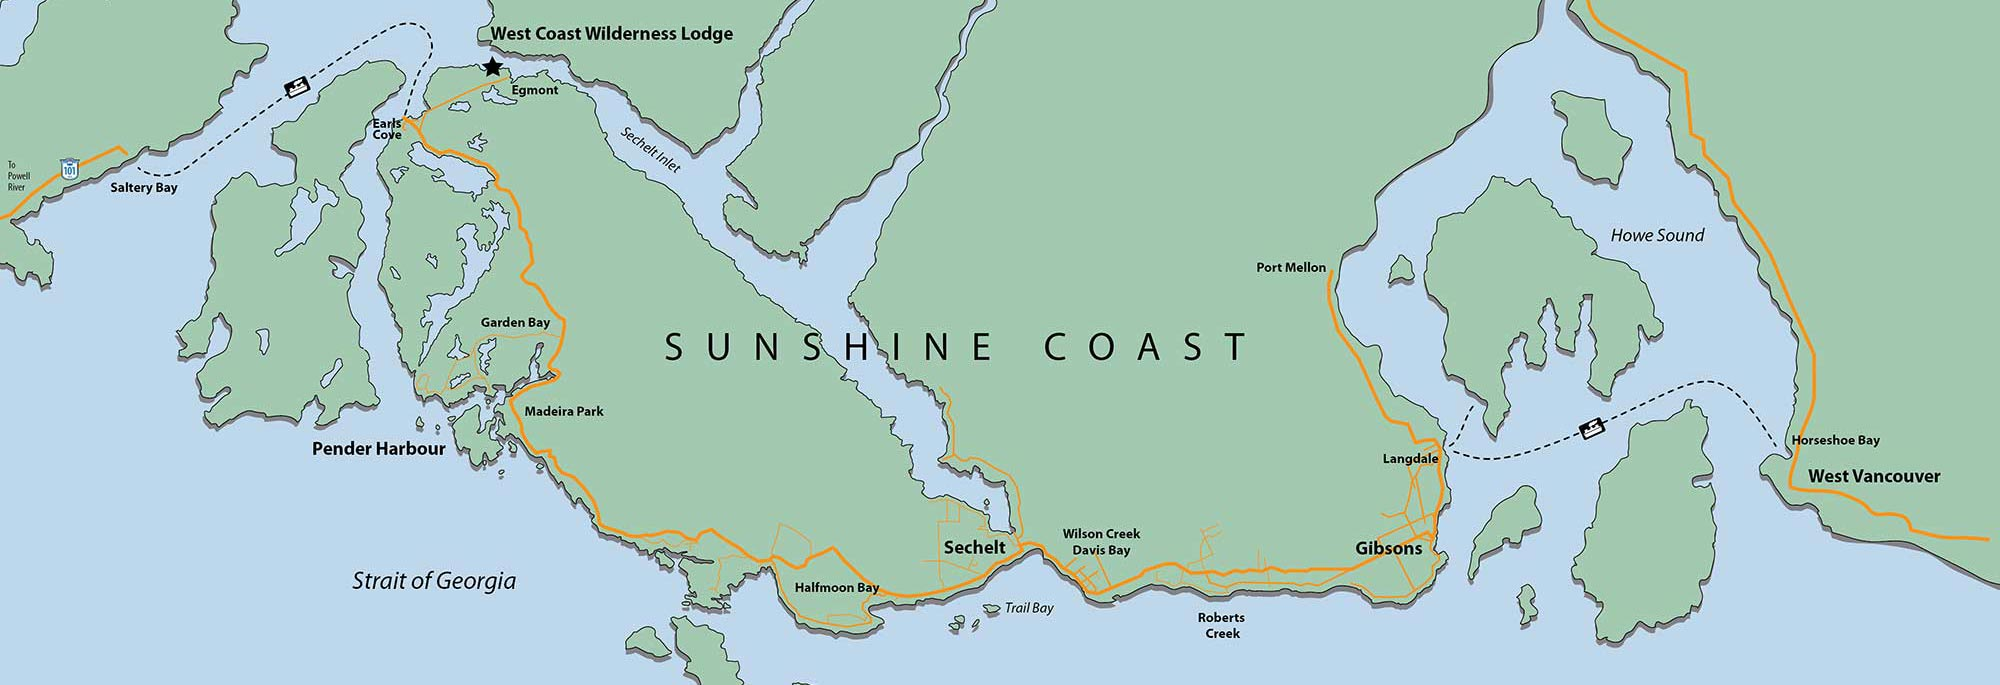 Map of Sunshine Coast, BC